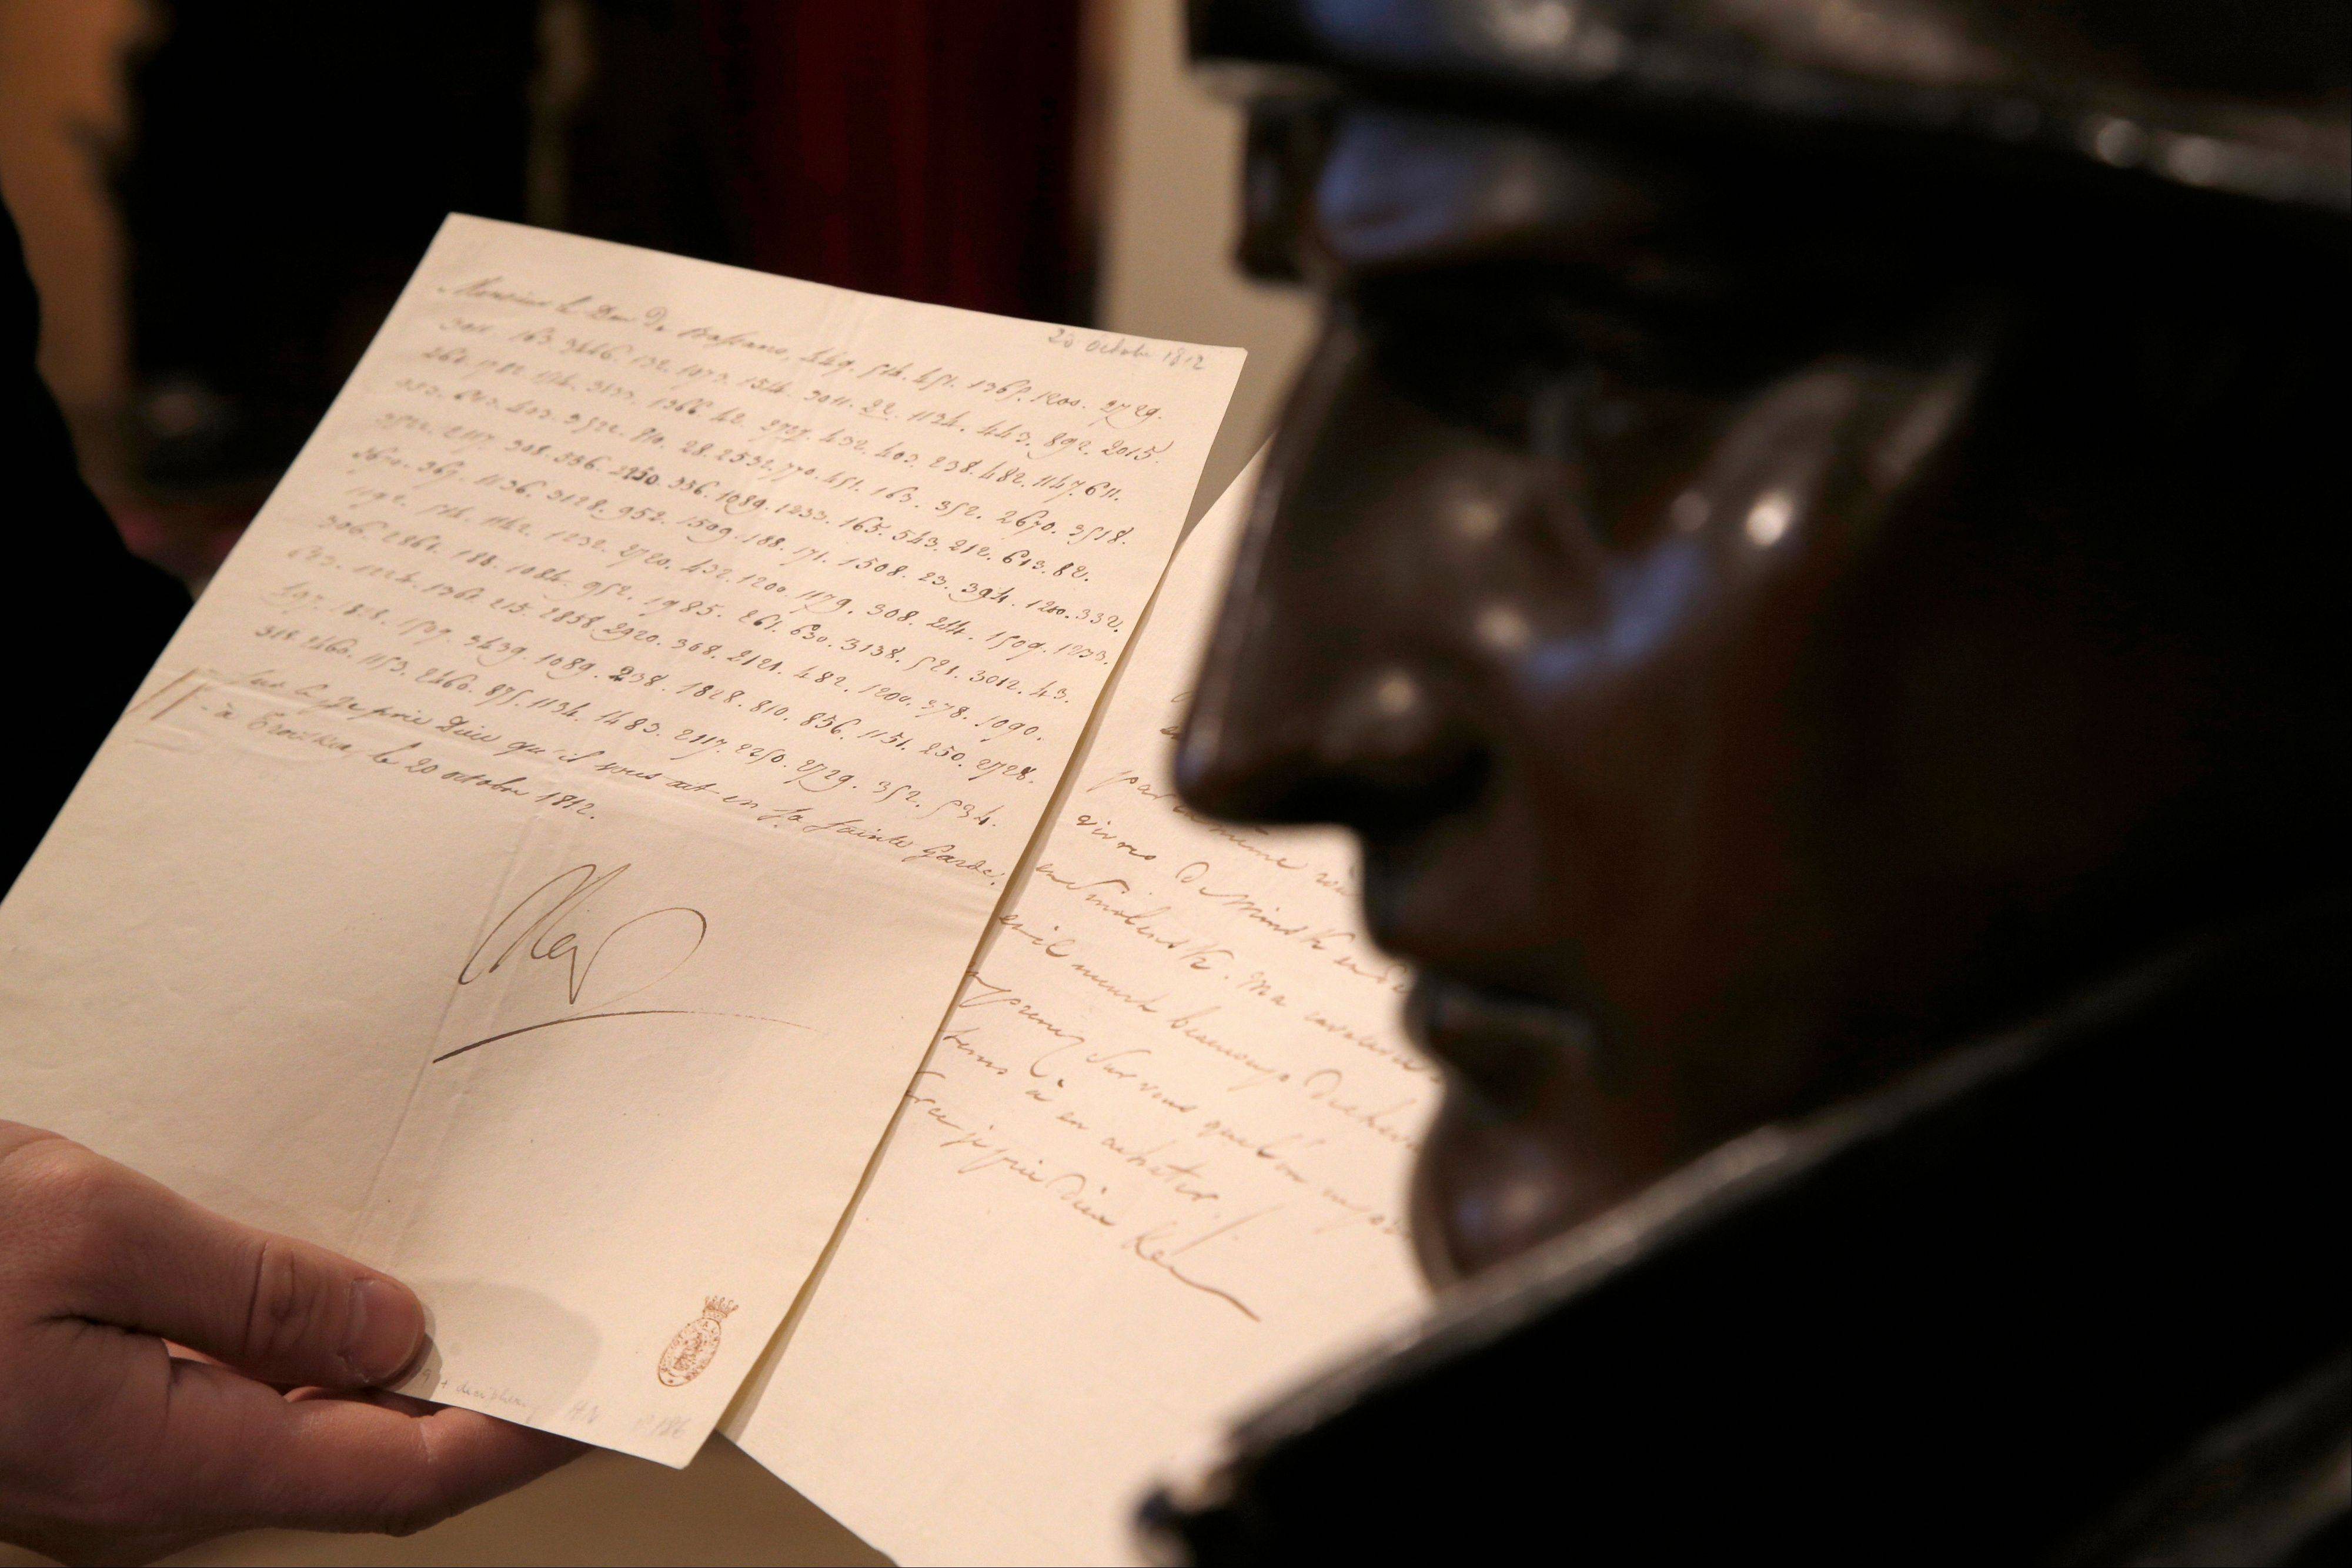 "A letter dictated and signed by Napoleon in secret code that declares his intentions ""to blow up the Kremlin"" during his ill-fated Russian campaign is displayed for the media in Fontainebleau, outside Paris. The rare letter, written in unusually emotive language, sees Napoleon complain of harsh conditions and the shortcomings of his grand army. The letter goes on auction Sunday, Dec. 2, 2012."